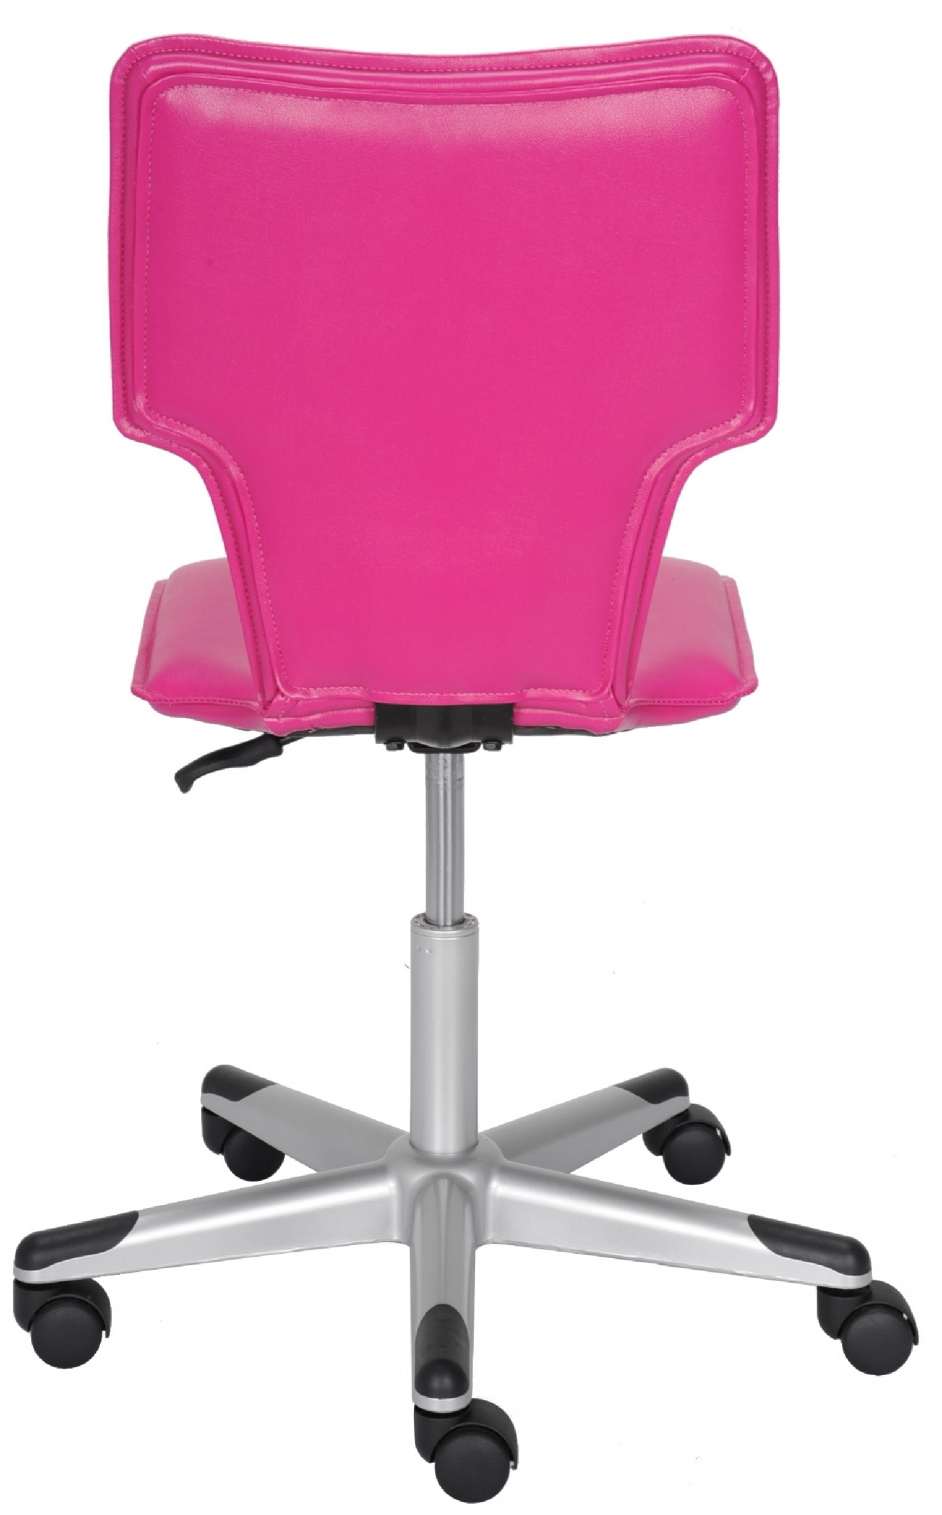 Preferred Pink Executive Office Chair – Desk Wall Art Ideas Intended For Pink Executive Office Chairs (View 14 of 20)